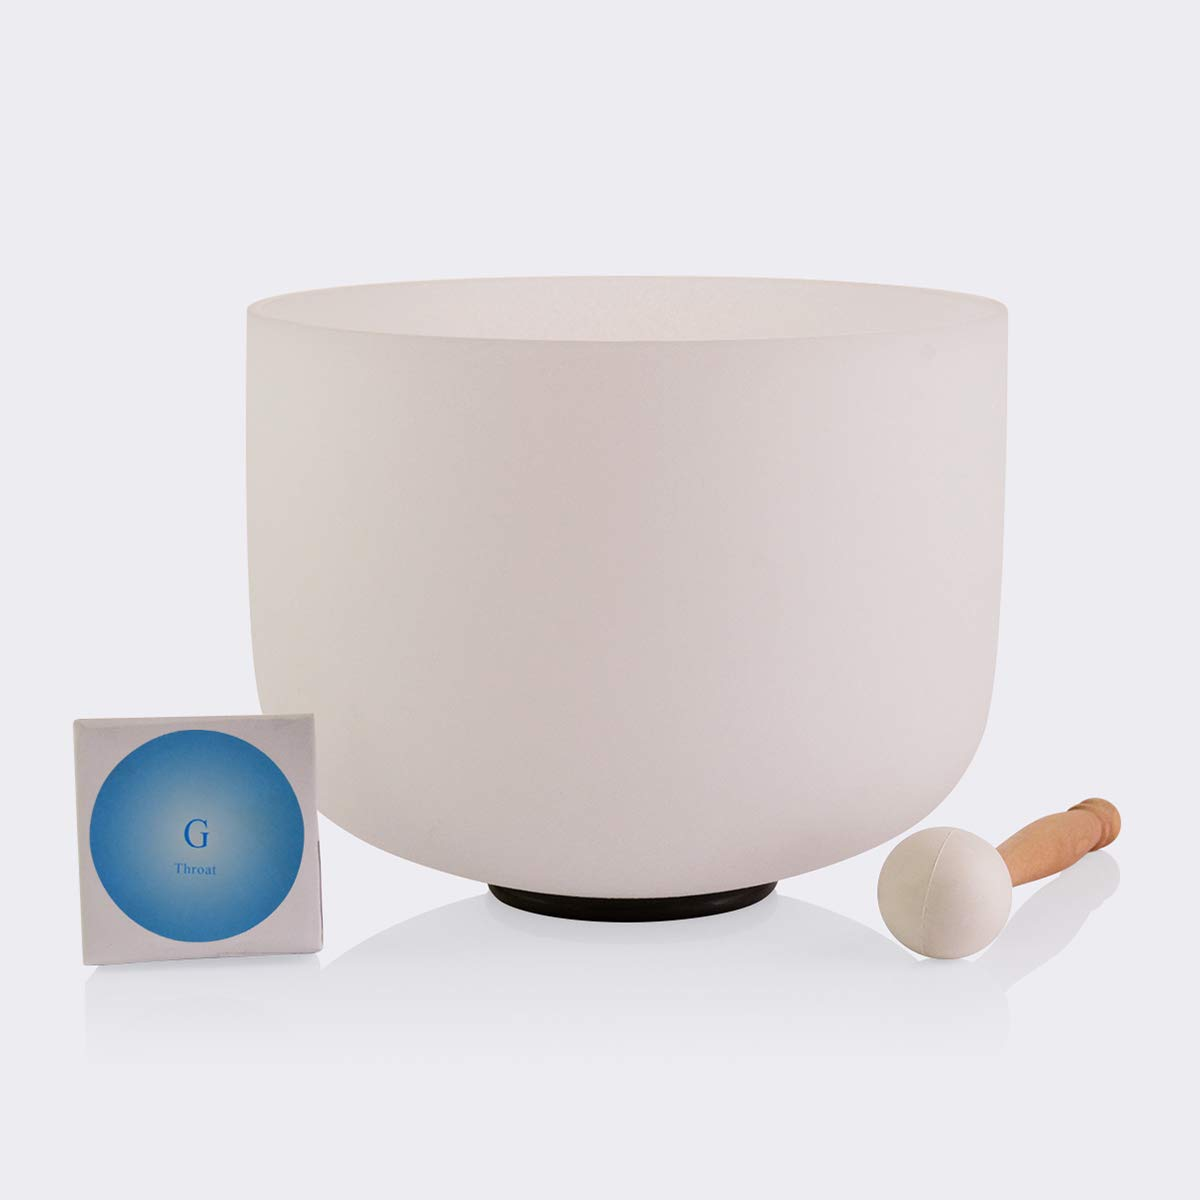 TOPFUND Singing Bowls 432Hz G Note Crystal Singing Bowl Throat Chakra 8 inch (O ring and rubber mallet Included)